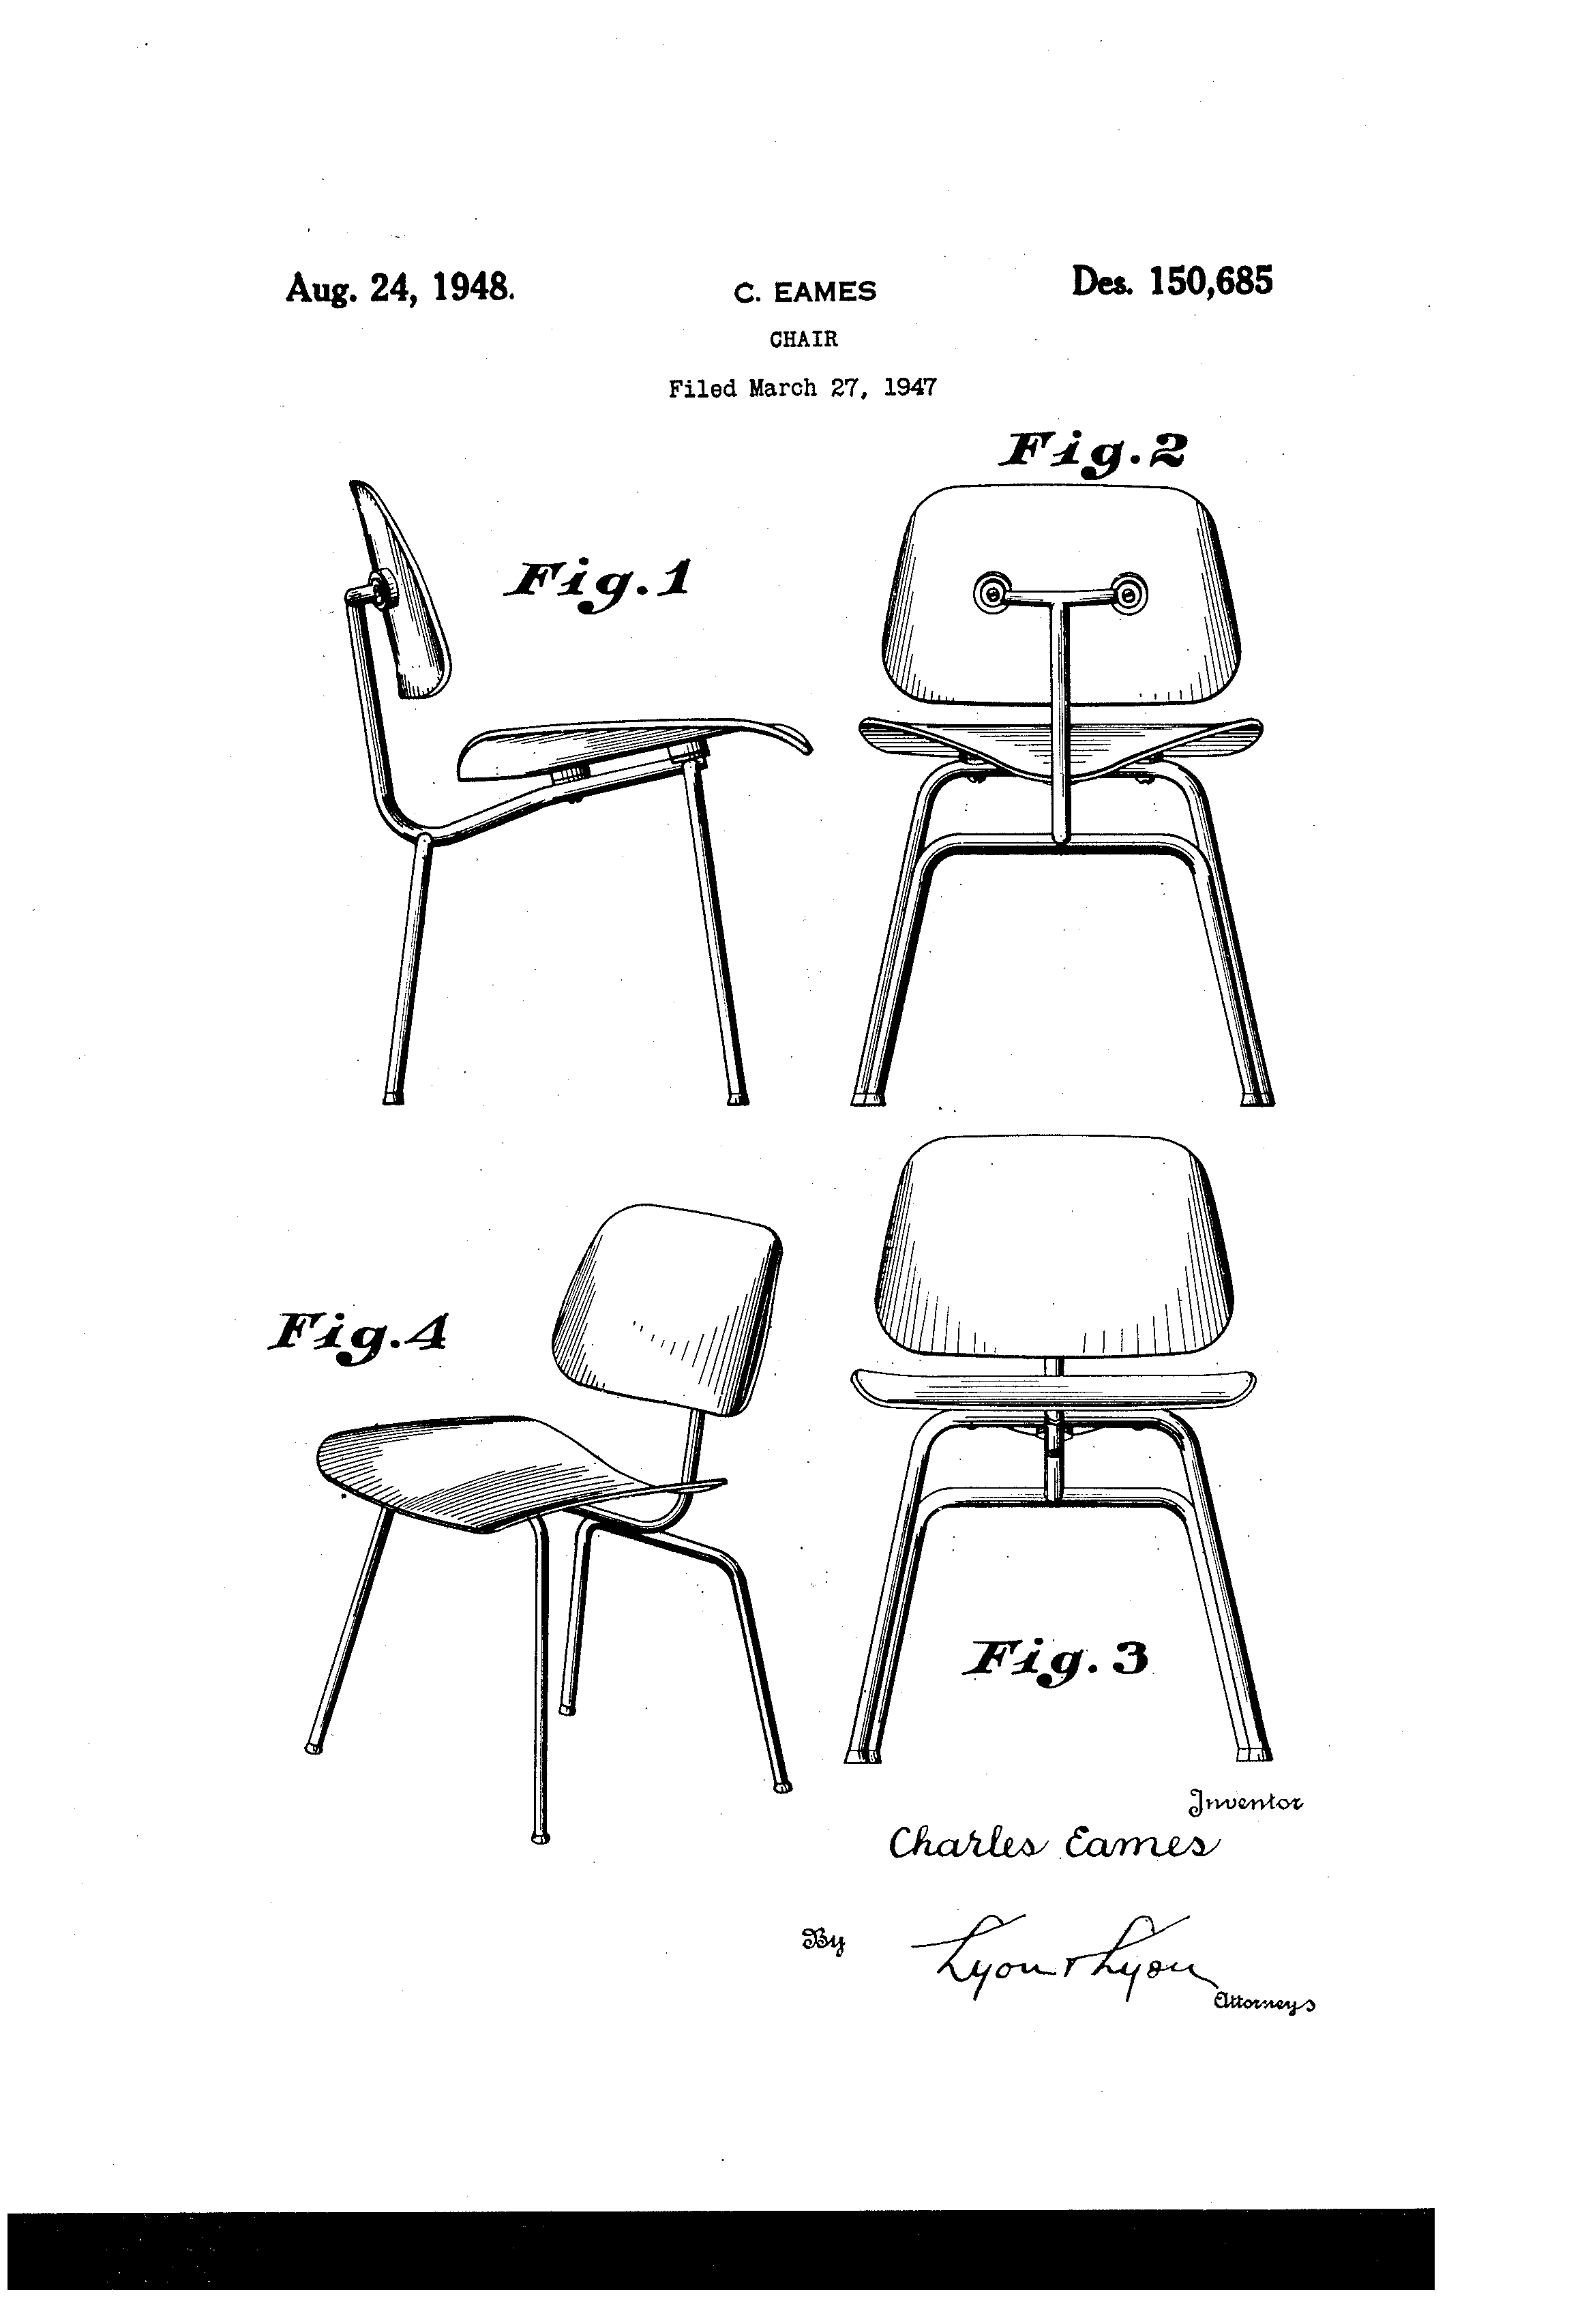 Eames Chair Drawing Patent Usd150685 Design For A Chair Google Patents